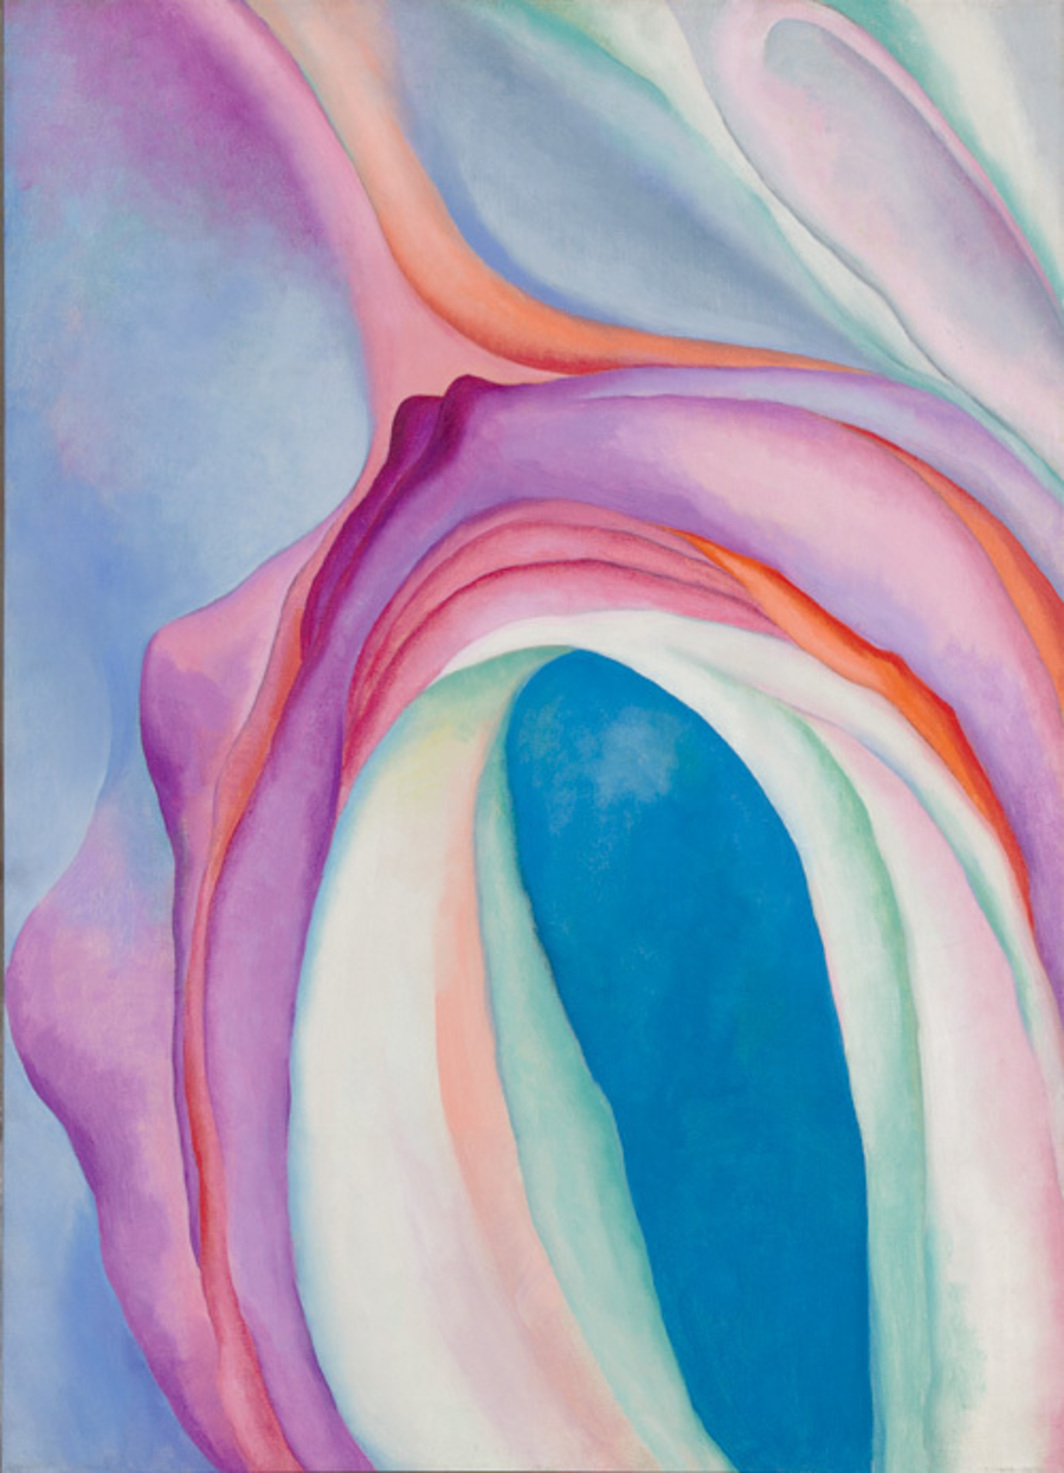 "Georgia O'Keeffe, Music, Pink and Blue No. 2, 1918, oil on canvas, 35 x 29 1/8"". © Georgia O'Keeffe Museum/Artists Rights Society (ARS), New York."